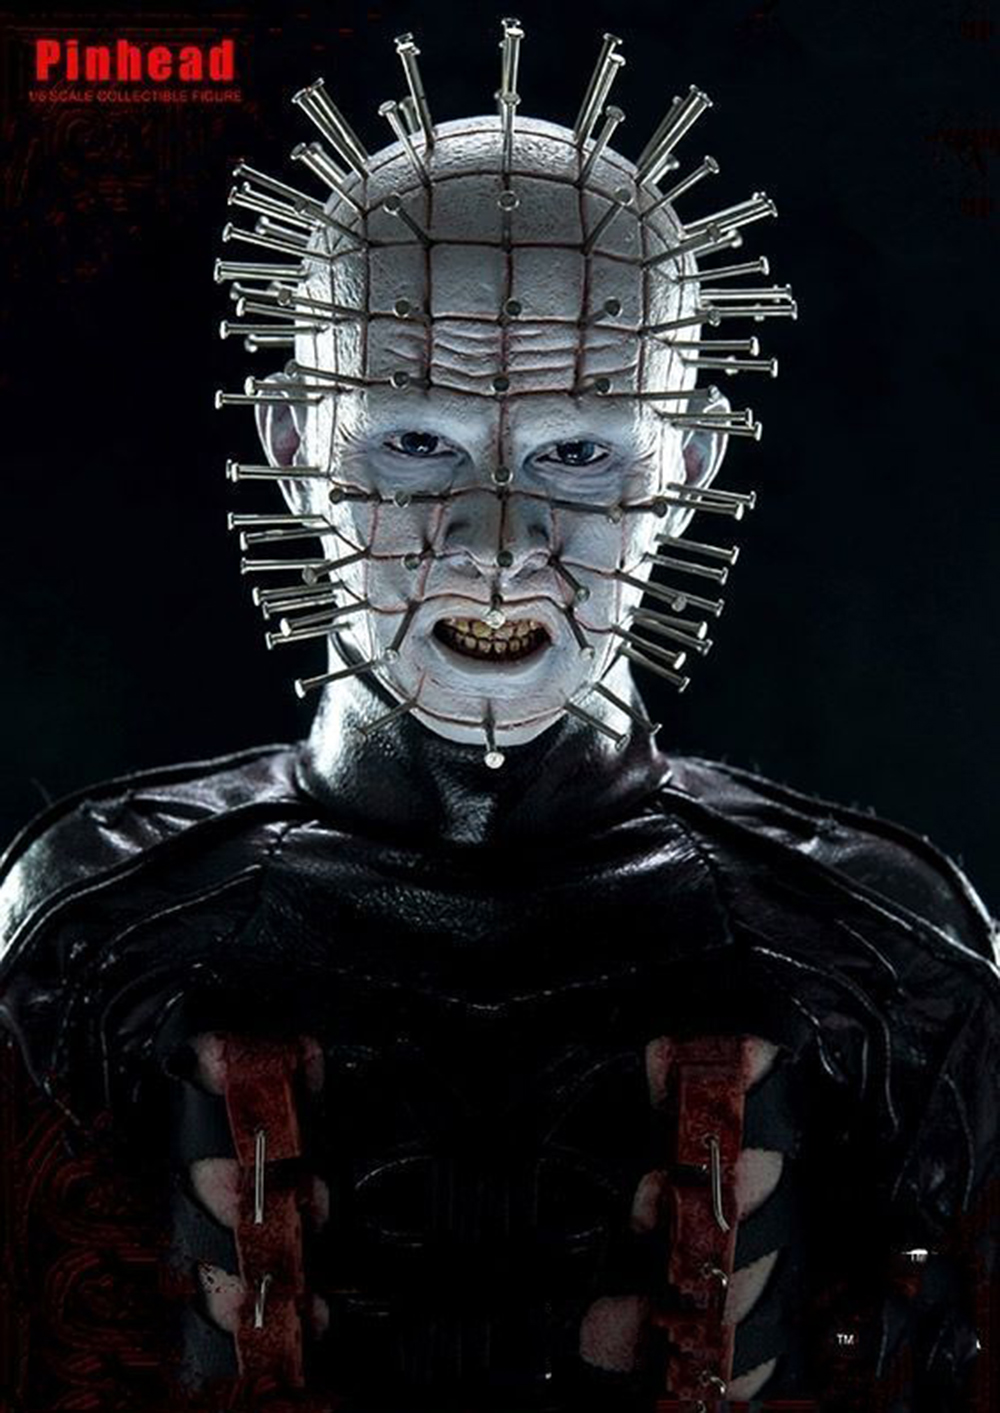 """Collectible 1/6 ScaleHellraiser III Hell on Earth Pinhead Collectible 12"""" Action Figure Doll Toys Gift 1"""